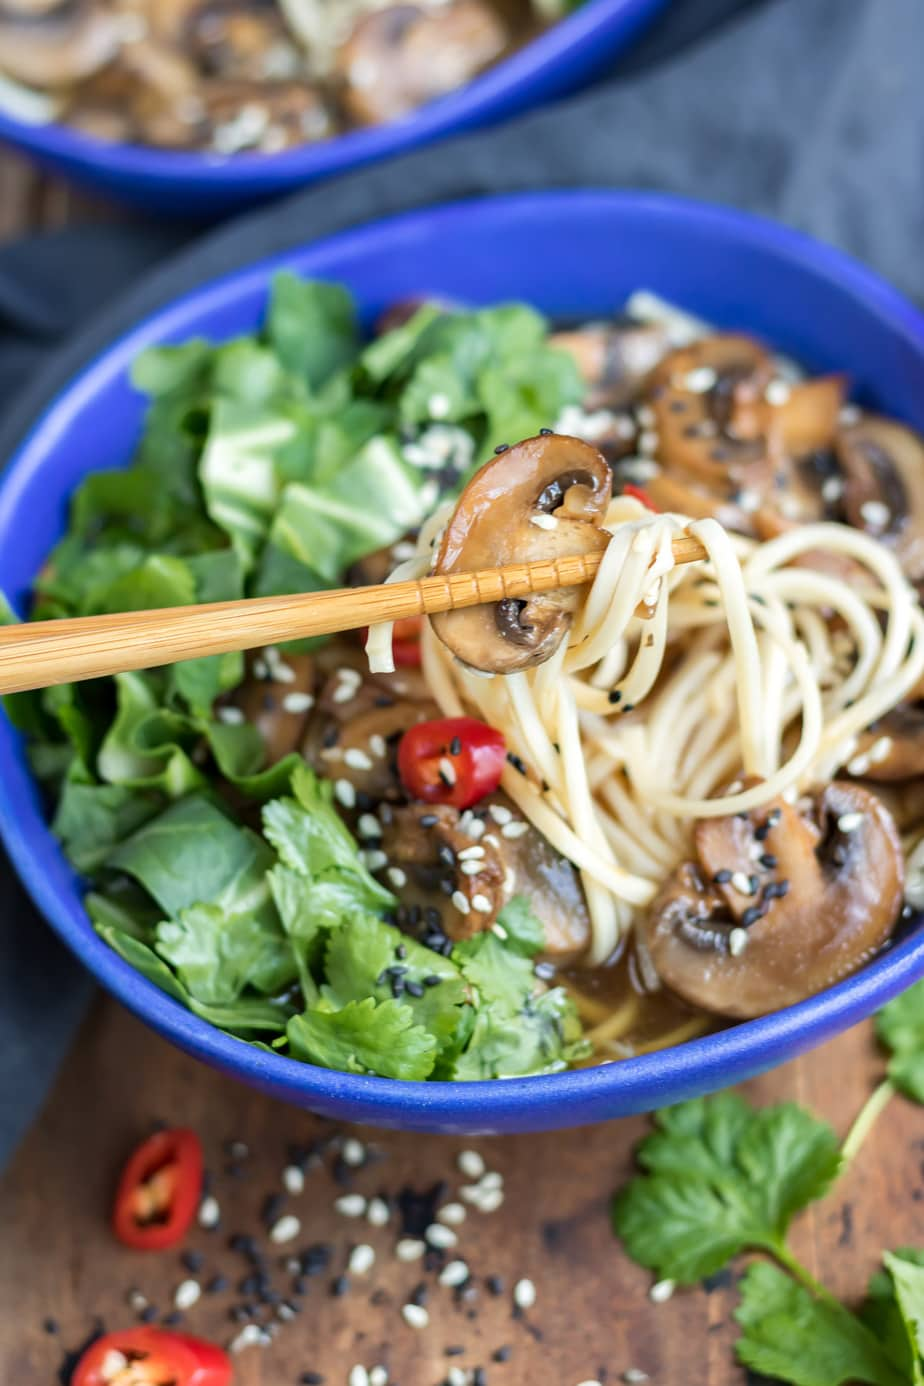 Chopsticks taking mushrooms and noodles out of a bowl.